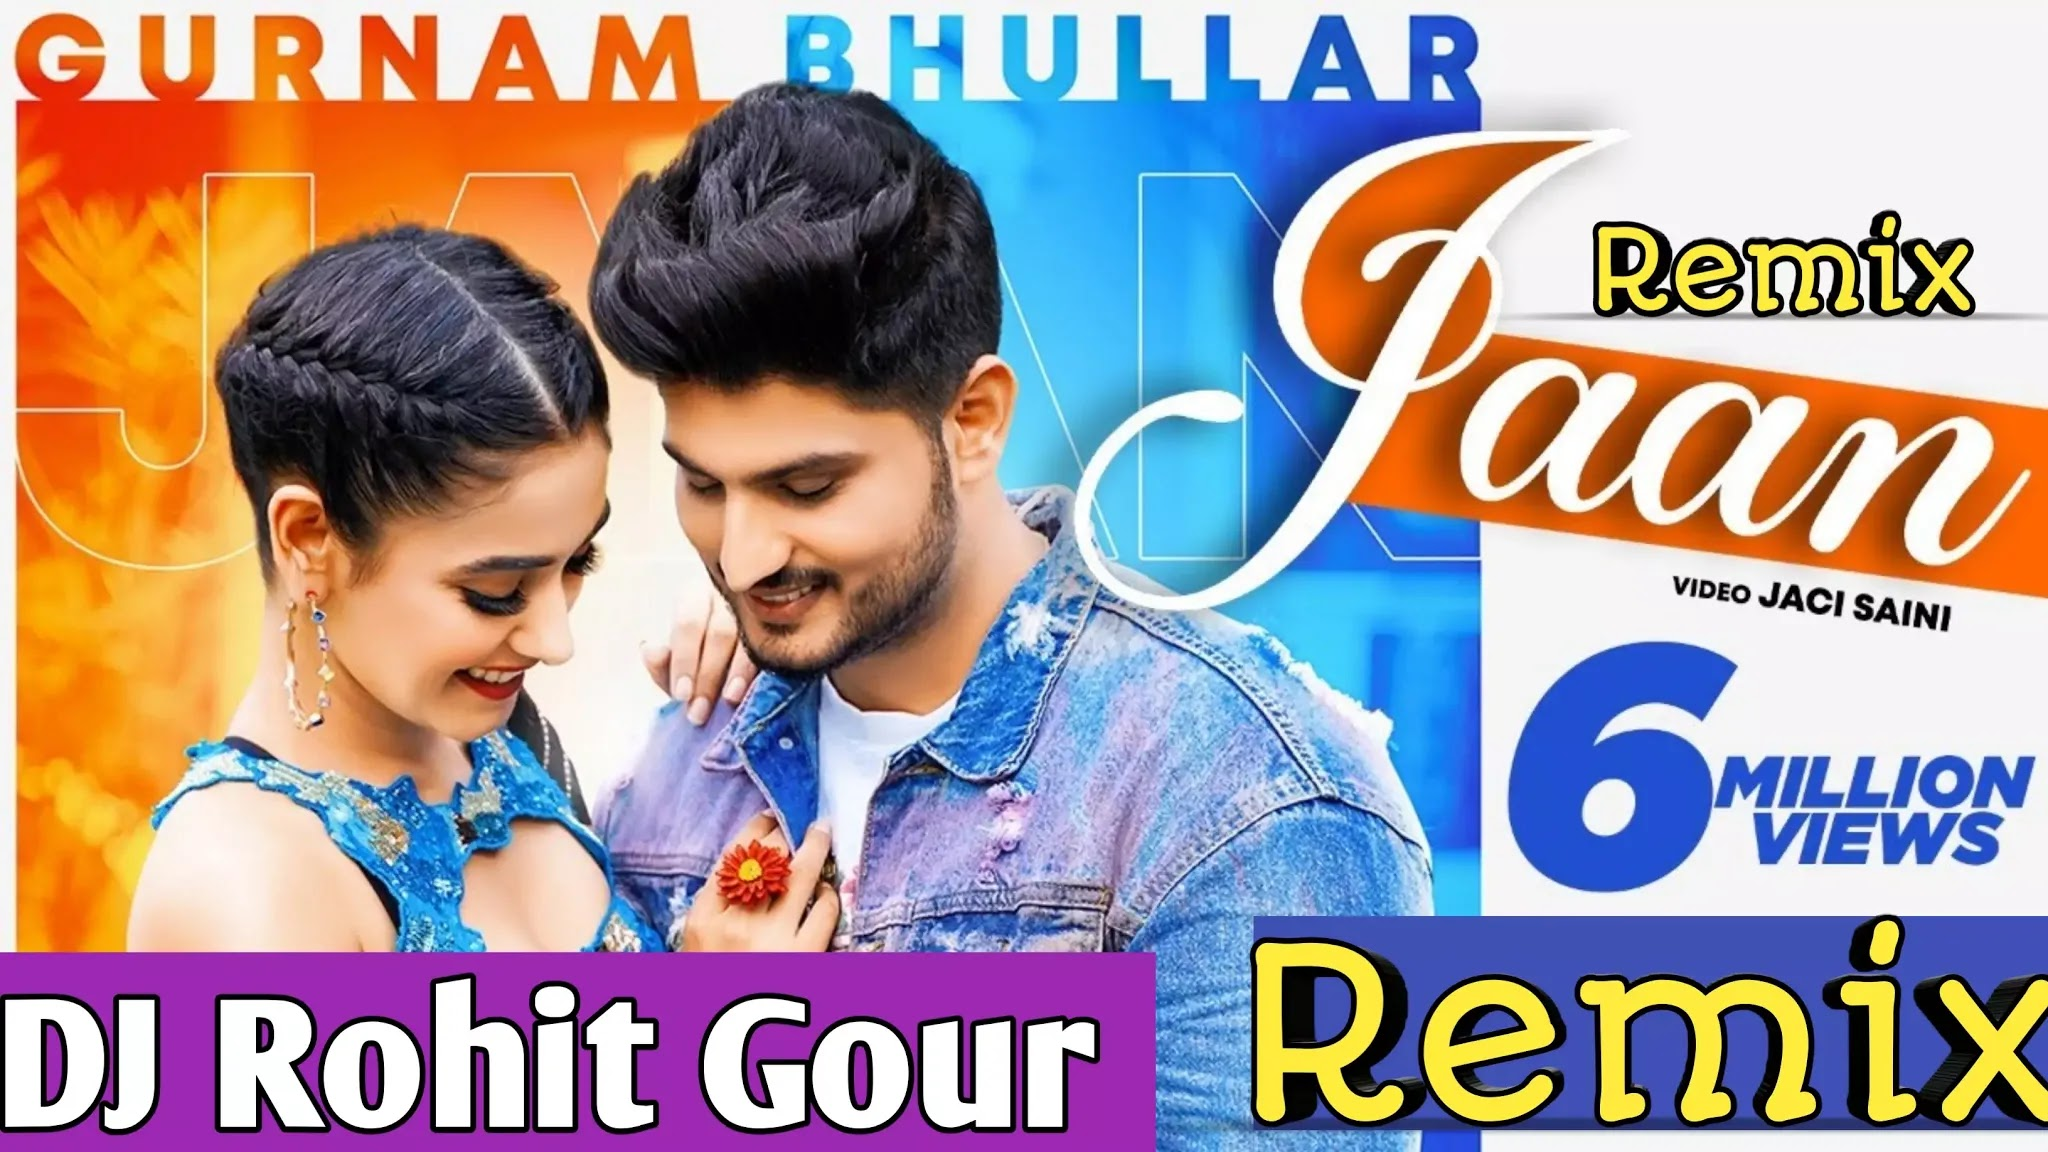 Jaan Dj Remix Song | Gurnam Bhullar | Jaan Mp3 Song Download Dj Rohit Gour 2020